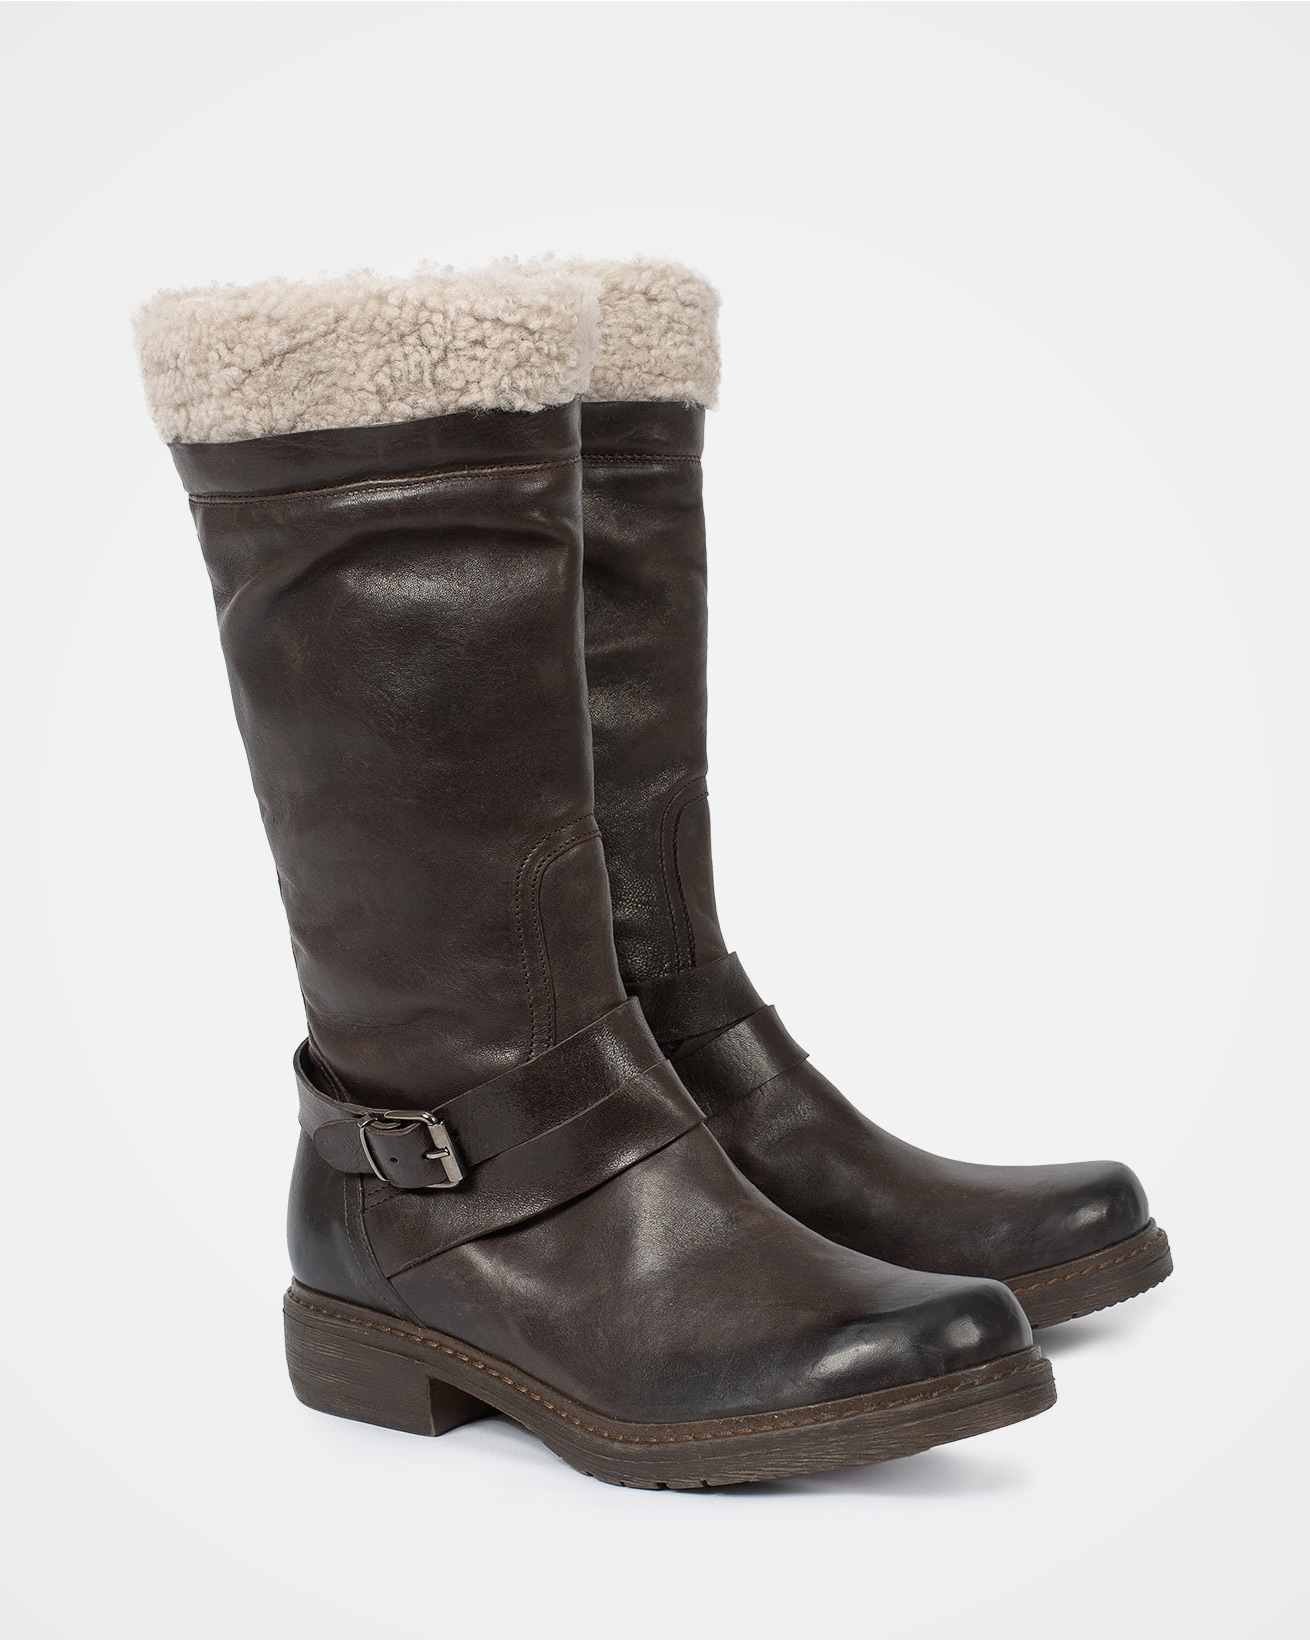 7736_sheepskin-trim-cuff-long-boot_tanners-brown_pair.jpg